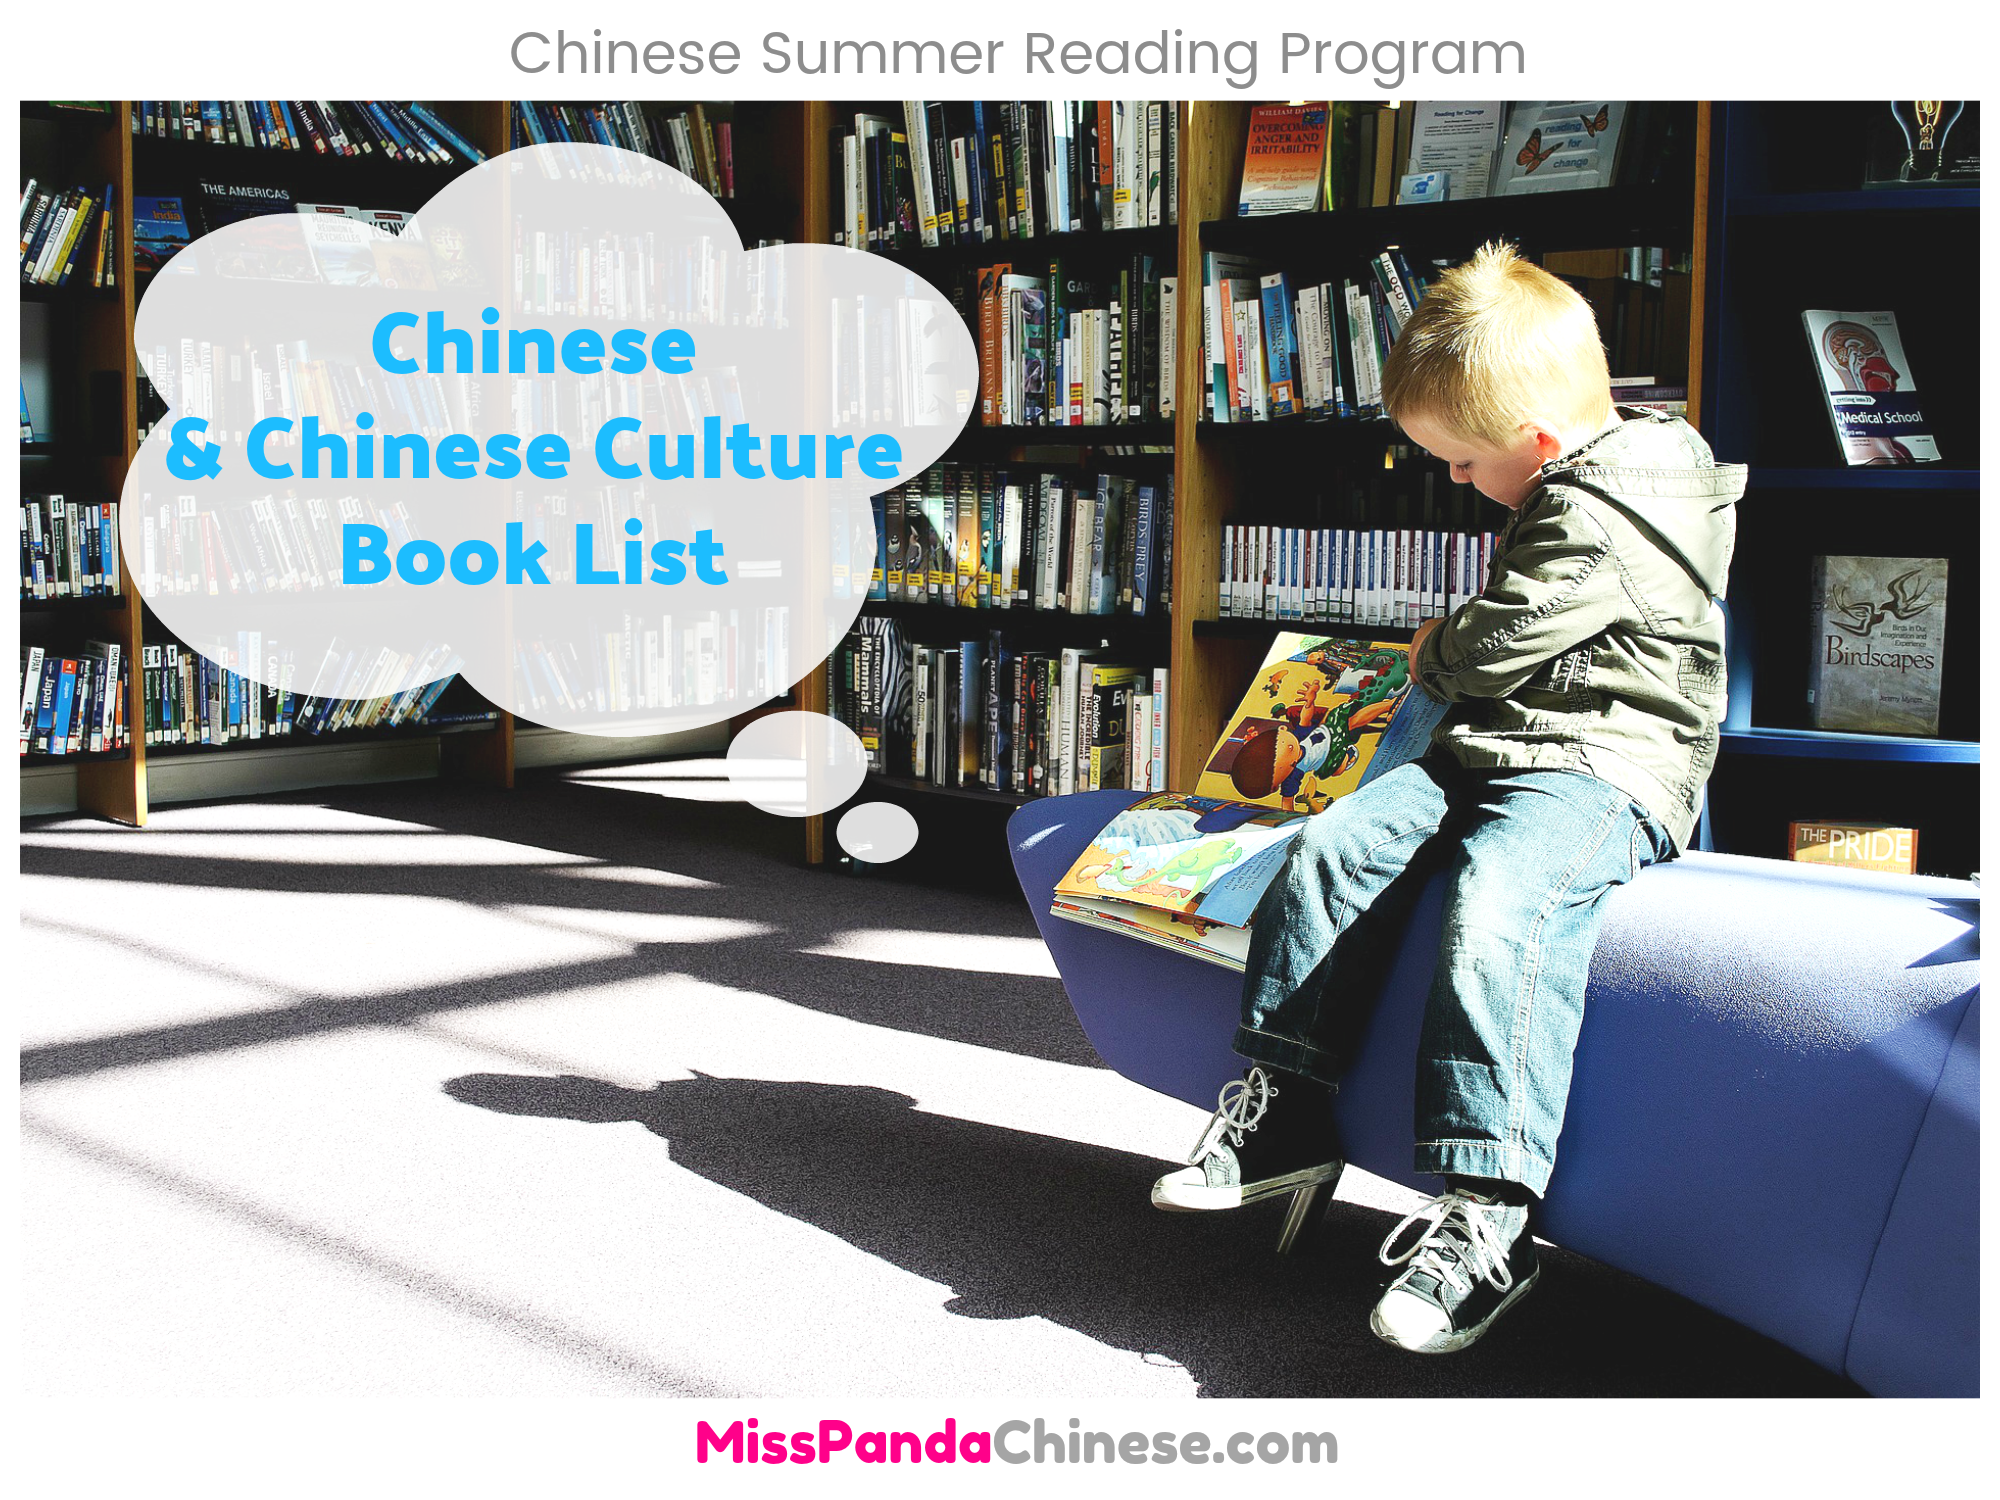 Summer Reading Program - Miss Panda Chinese